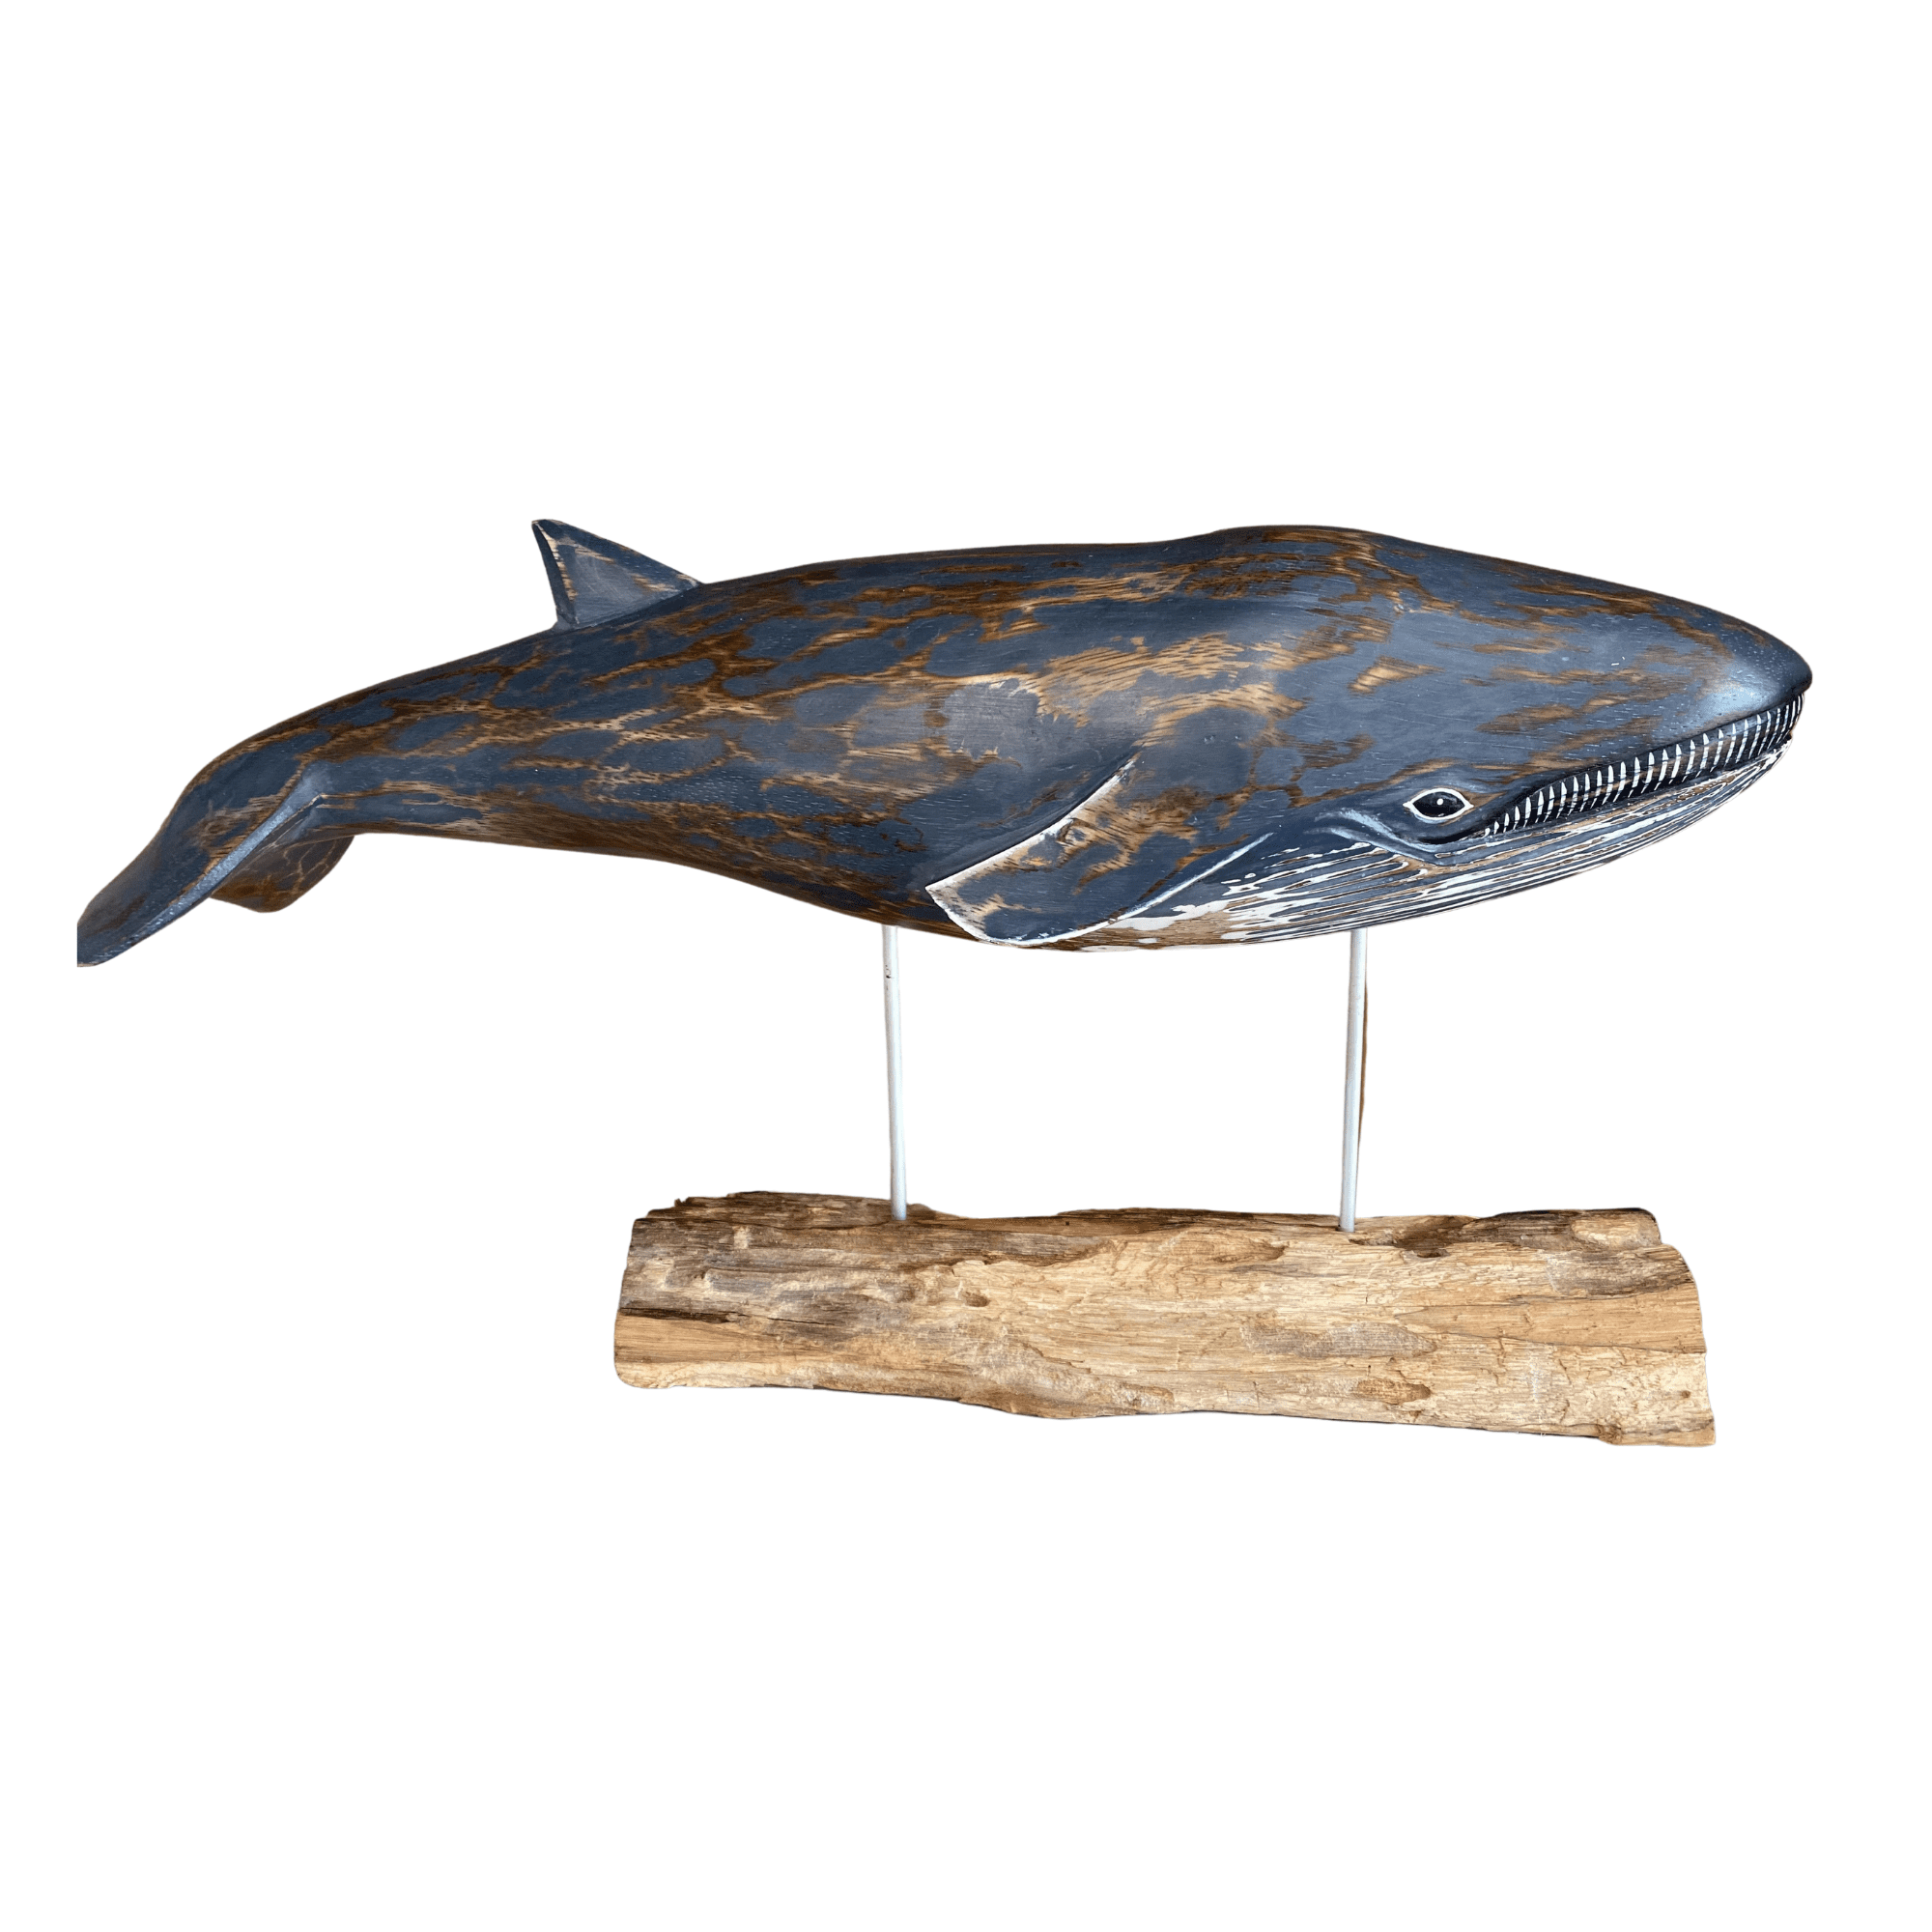 D406 Archipelago large blue whale wood carving no background